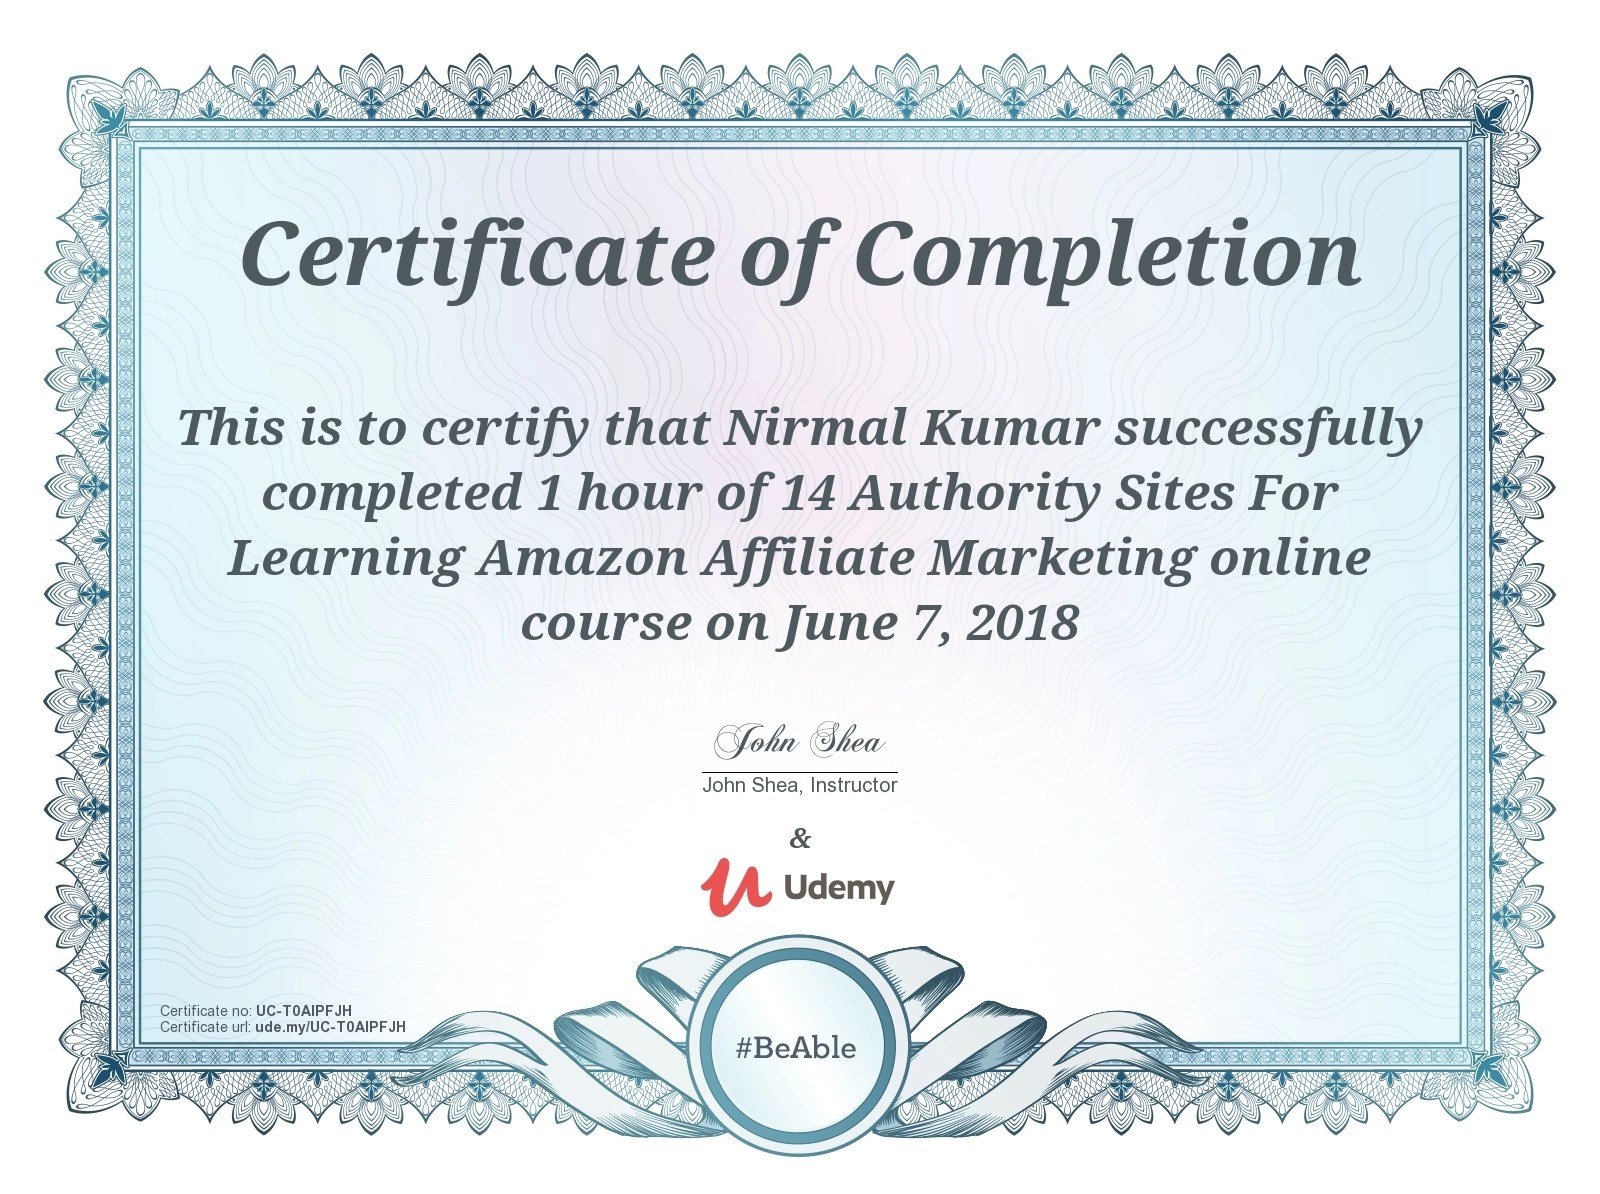 Nirmal Kumar completed the course on 14 Authority sites for Learning Amazon Affiliate Marketing